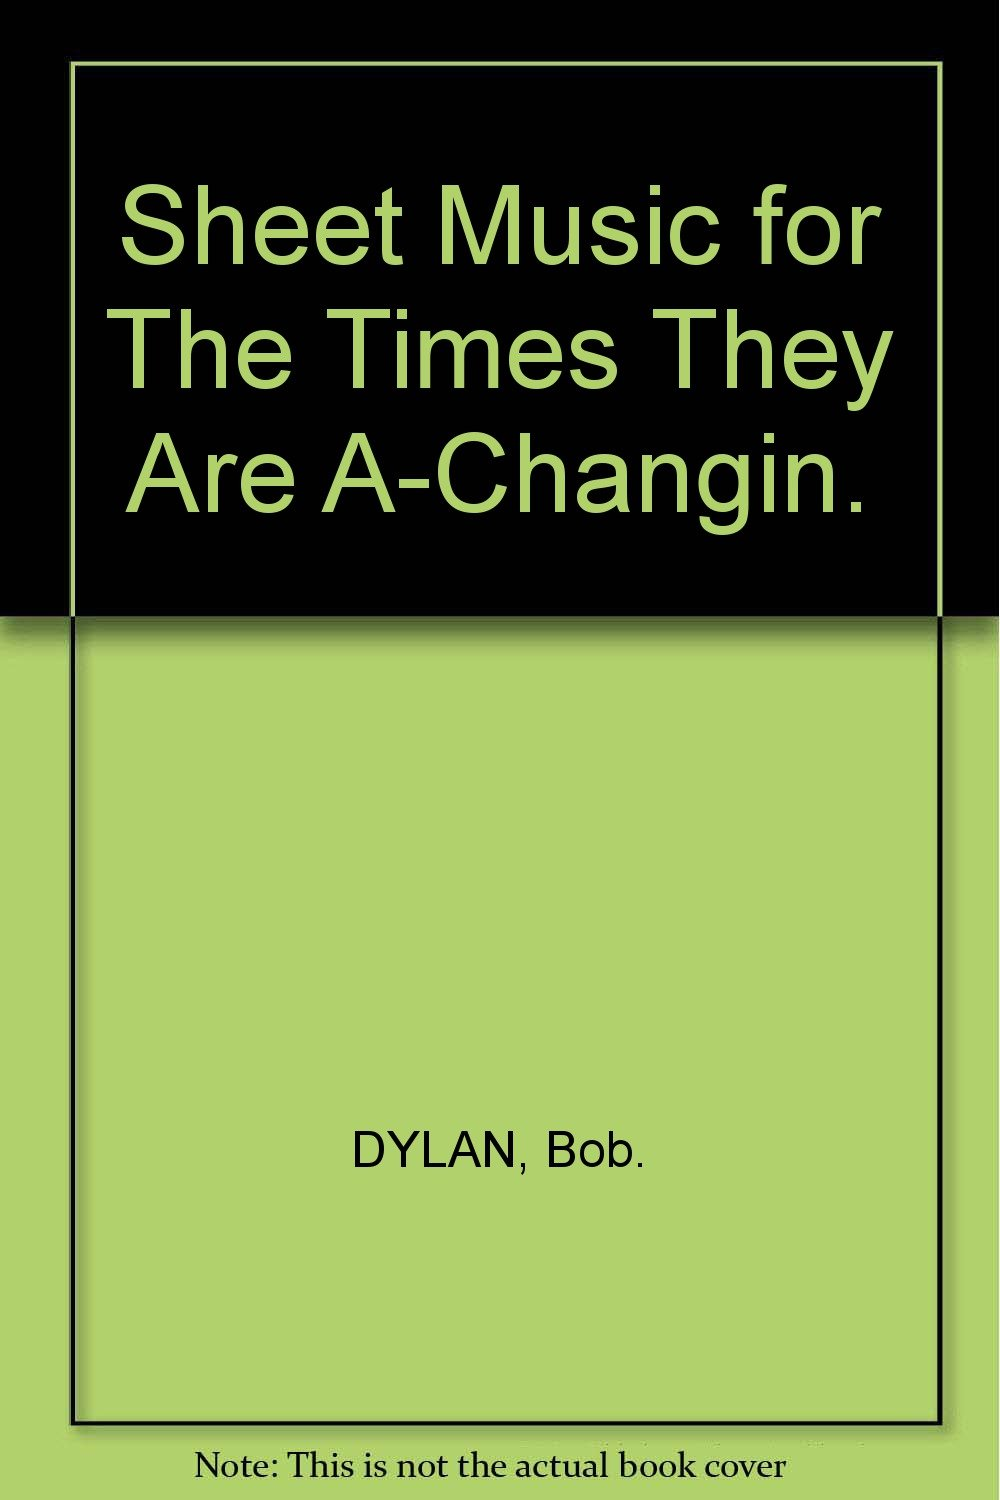 Sheet music for the times they are a changin bob dylan amazon sheet music for the times they are a changin bob dylan amazon books hexwebz Images